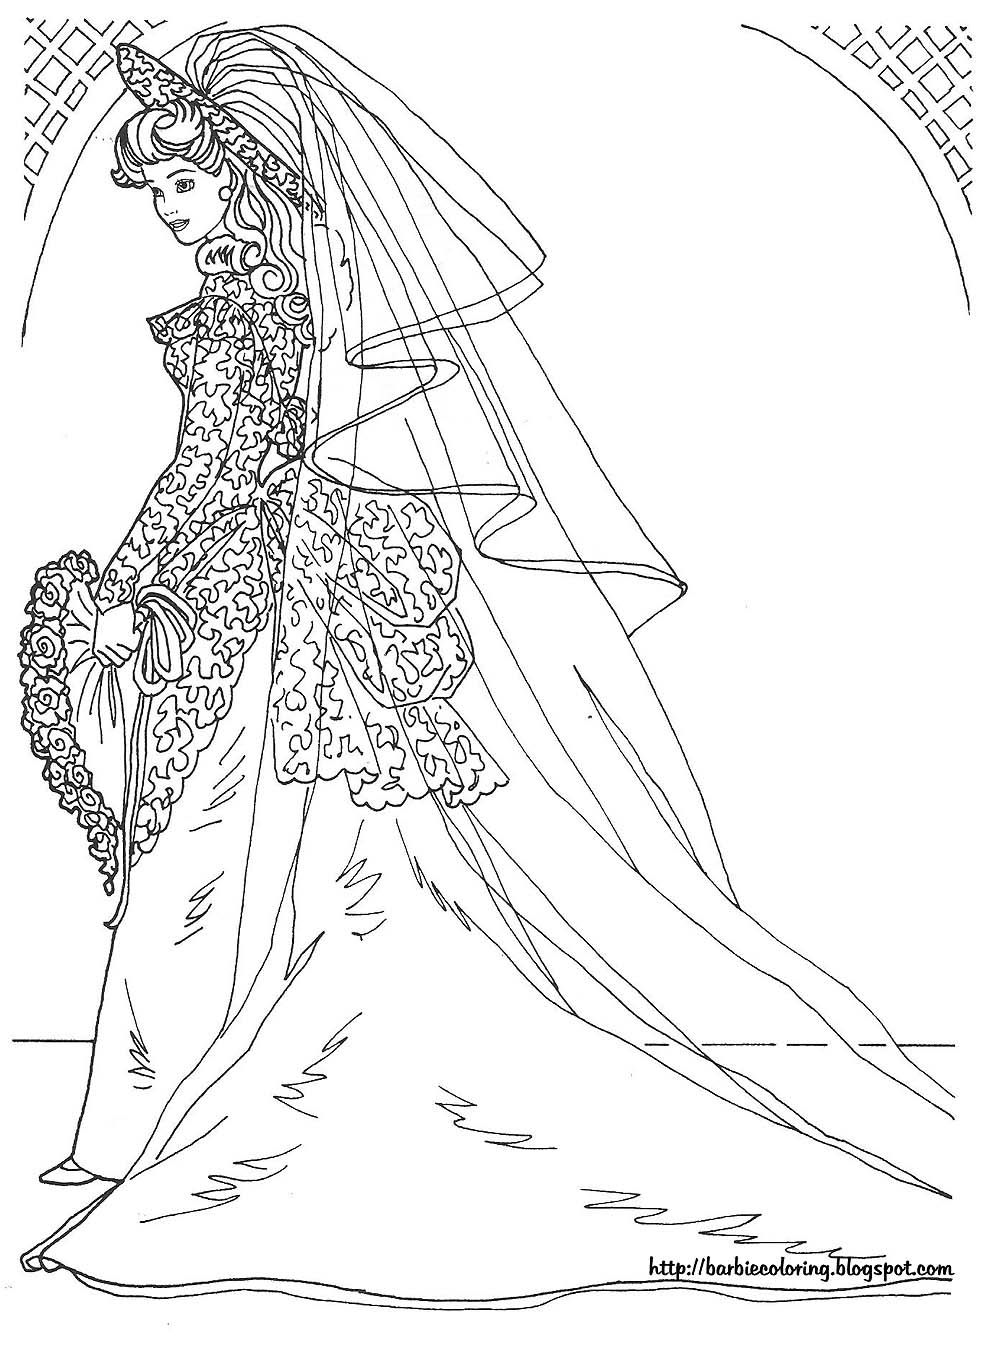 BARBIE COLORING PAGES: BARBIE WEDDING DRESS COLORING PAGES | Cool ...